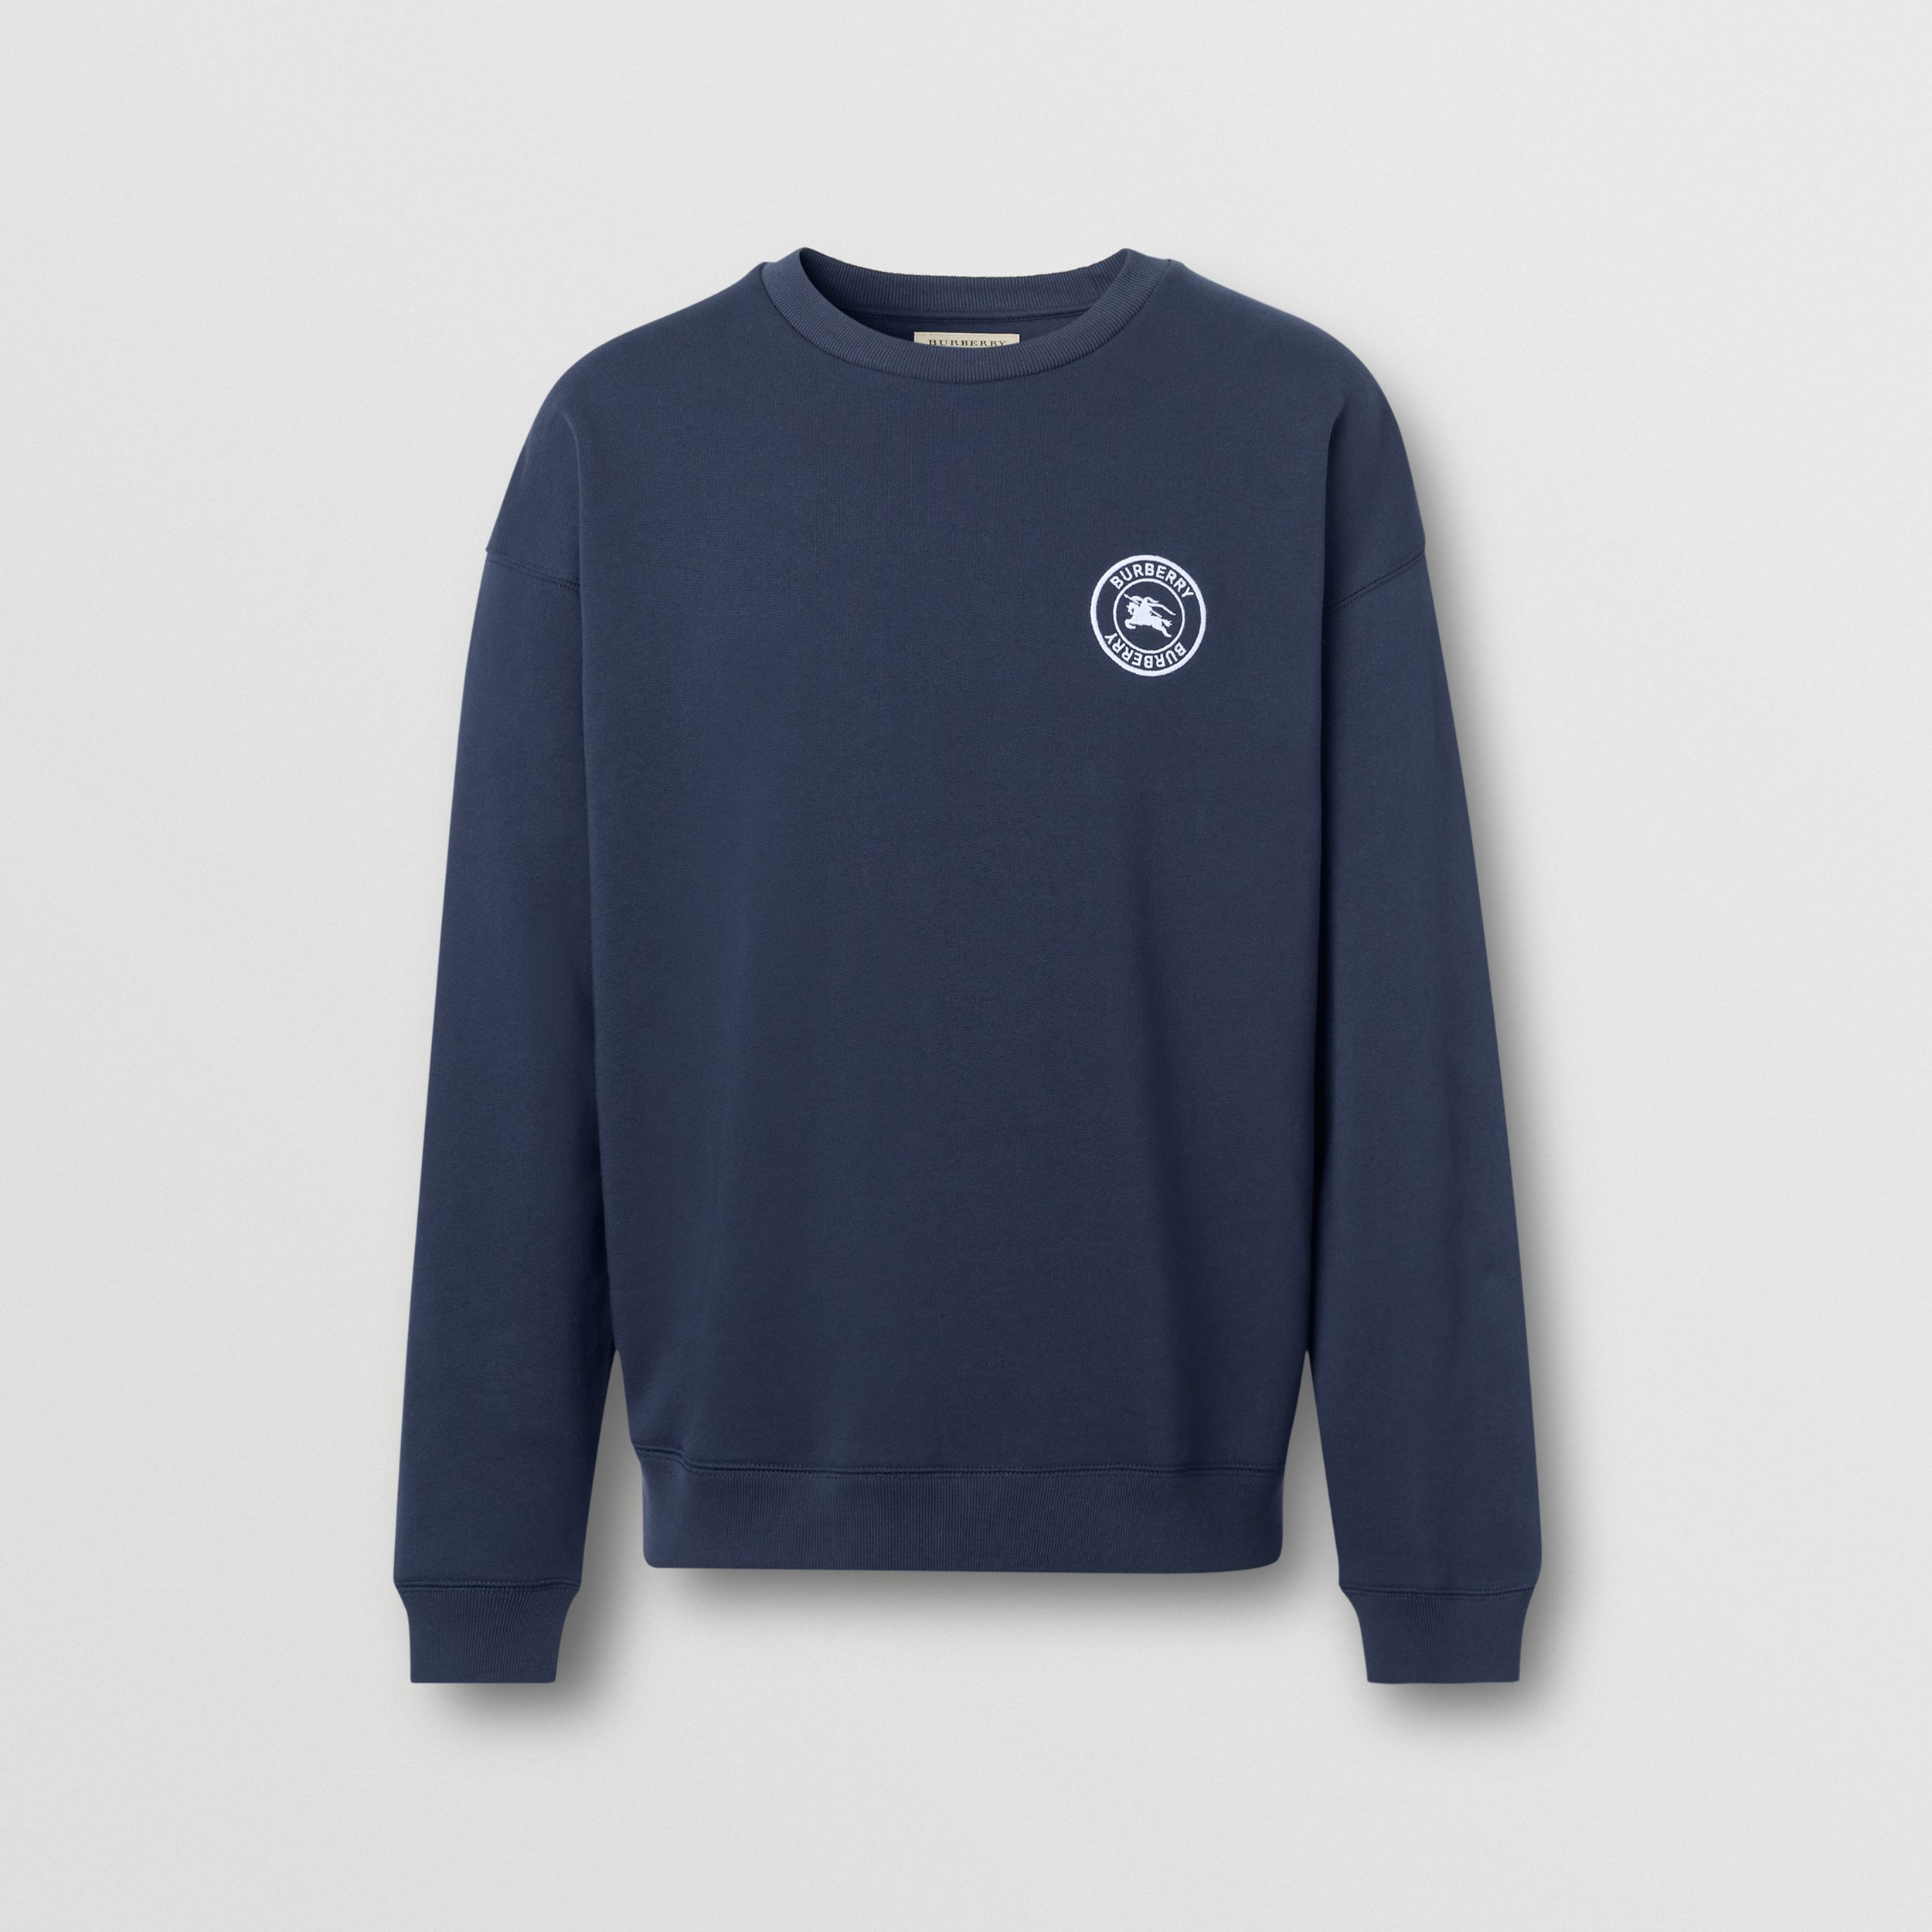 Embroidered Logo Jersey Sweatshirt in Navy - Men | Burberry - 1